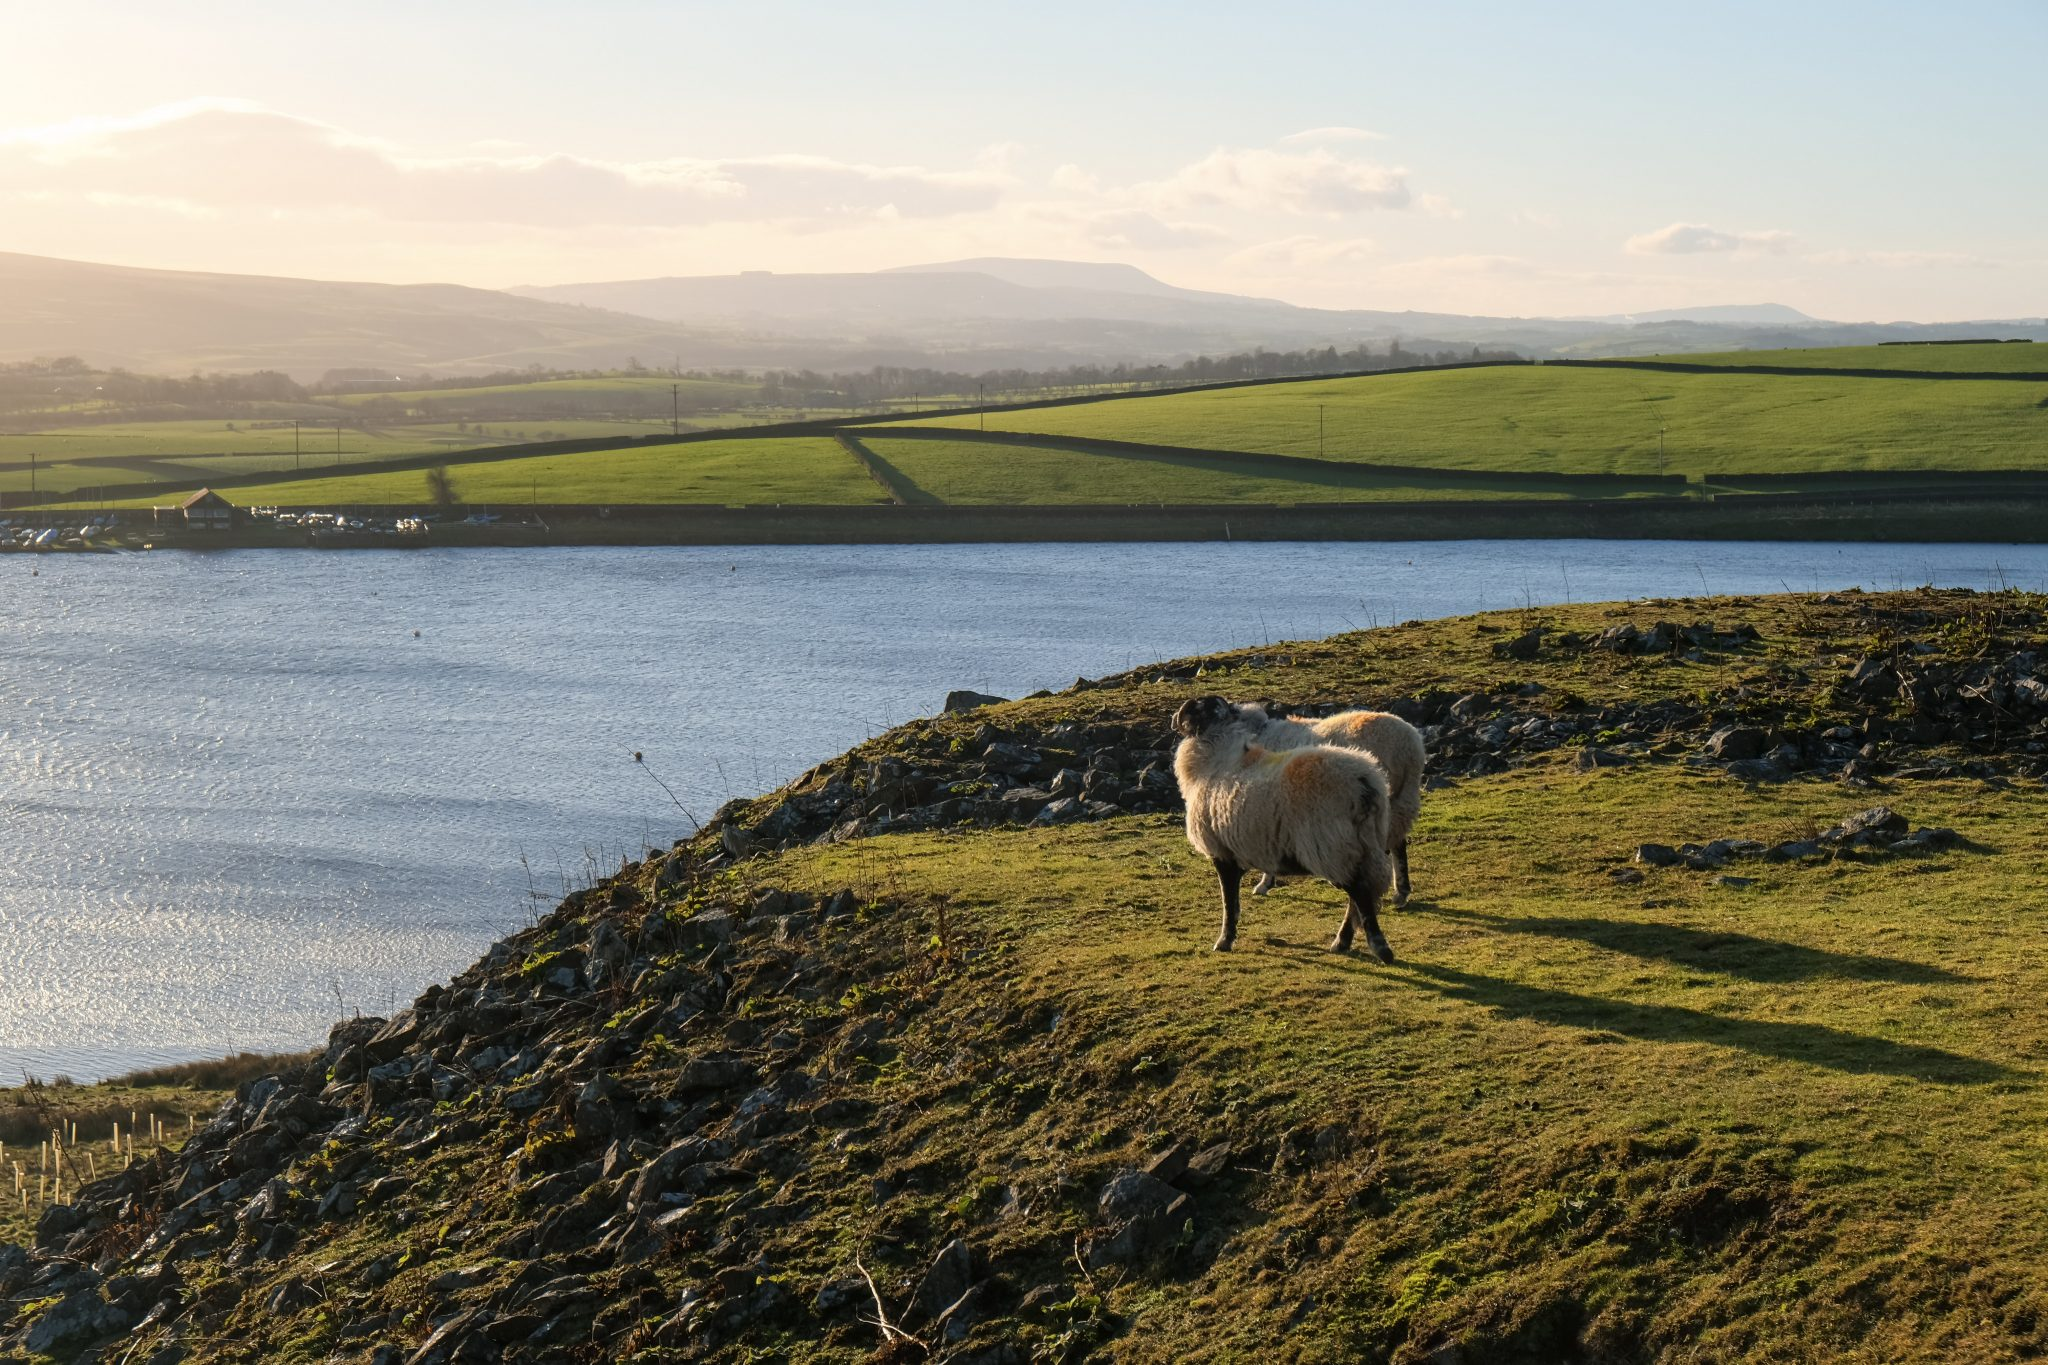 sheep in field overlooking reservoir